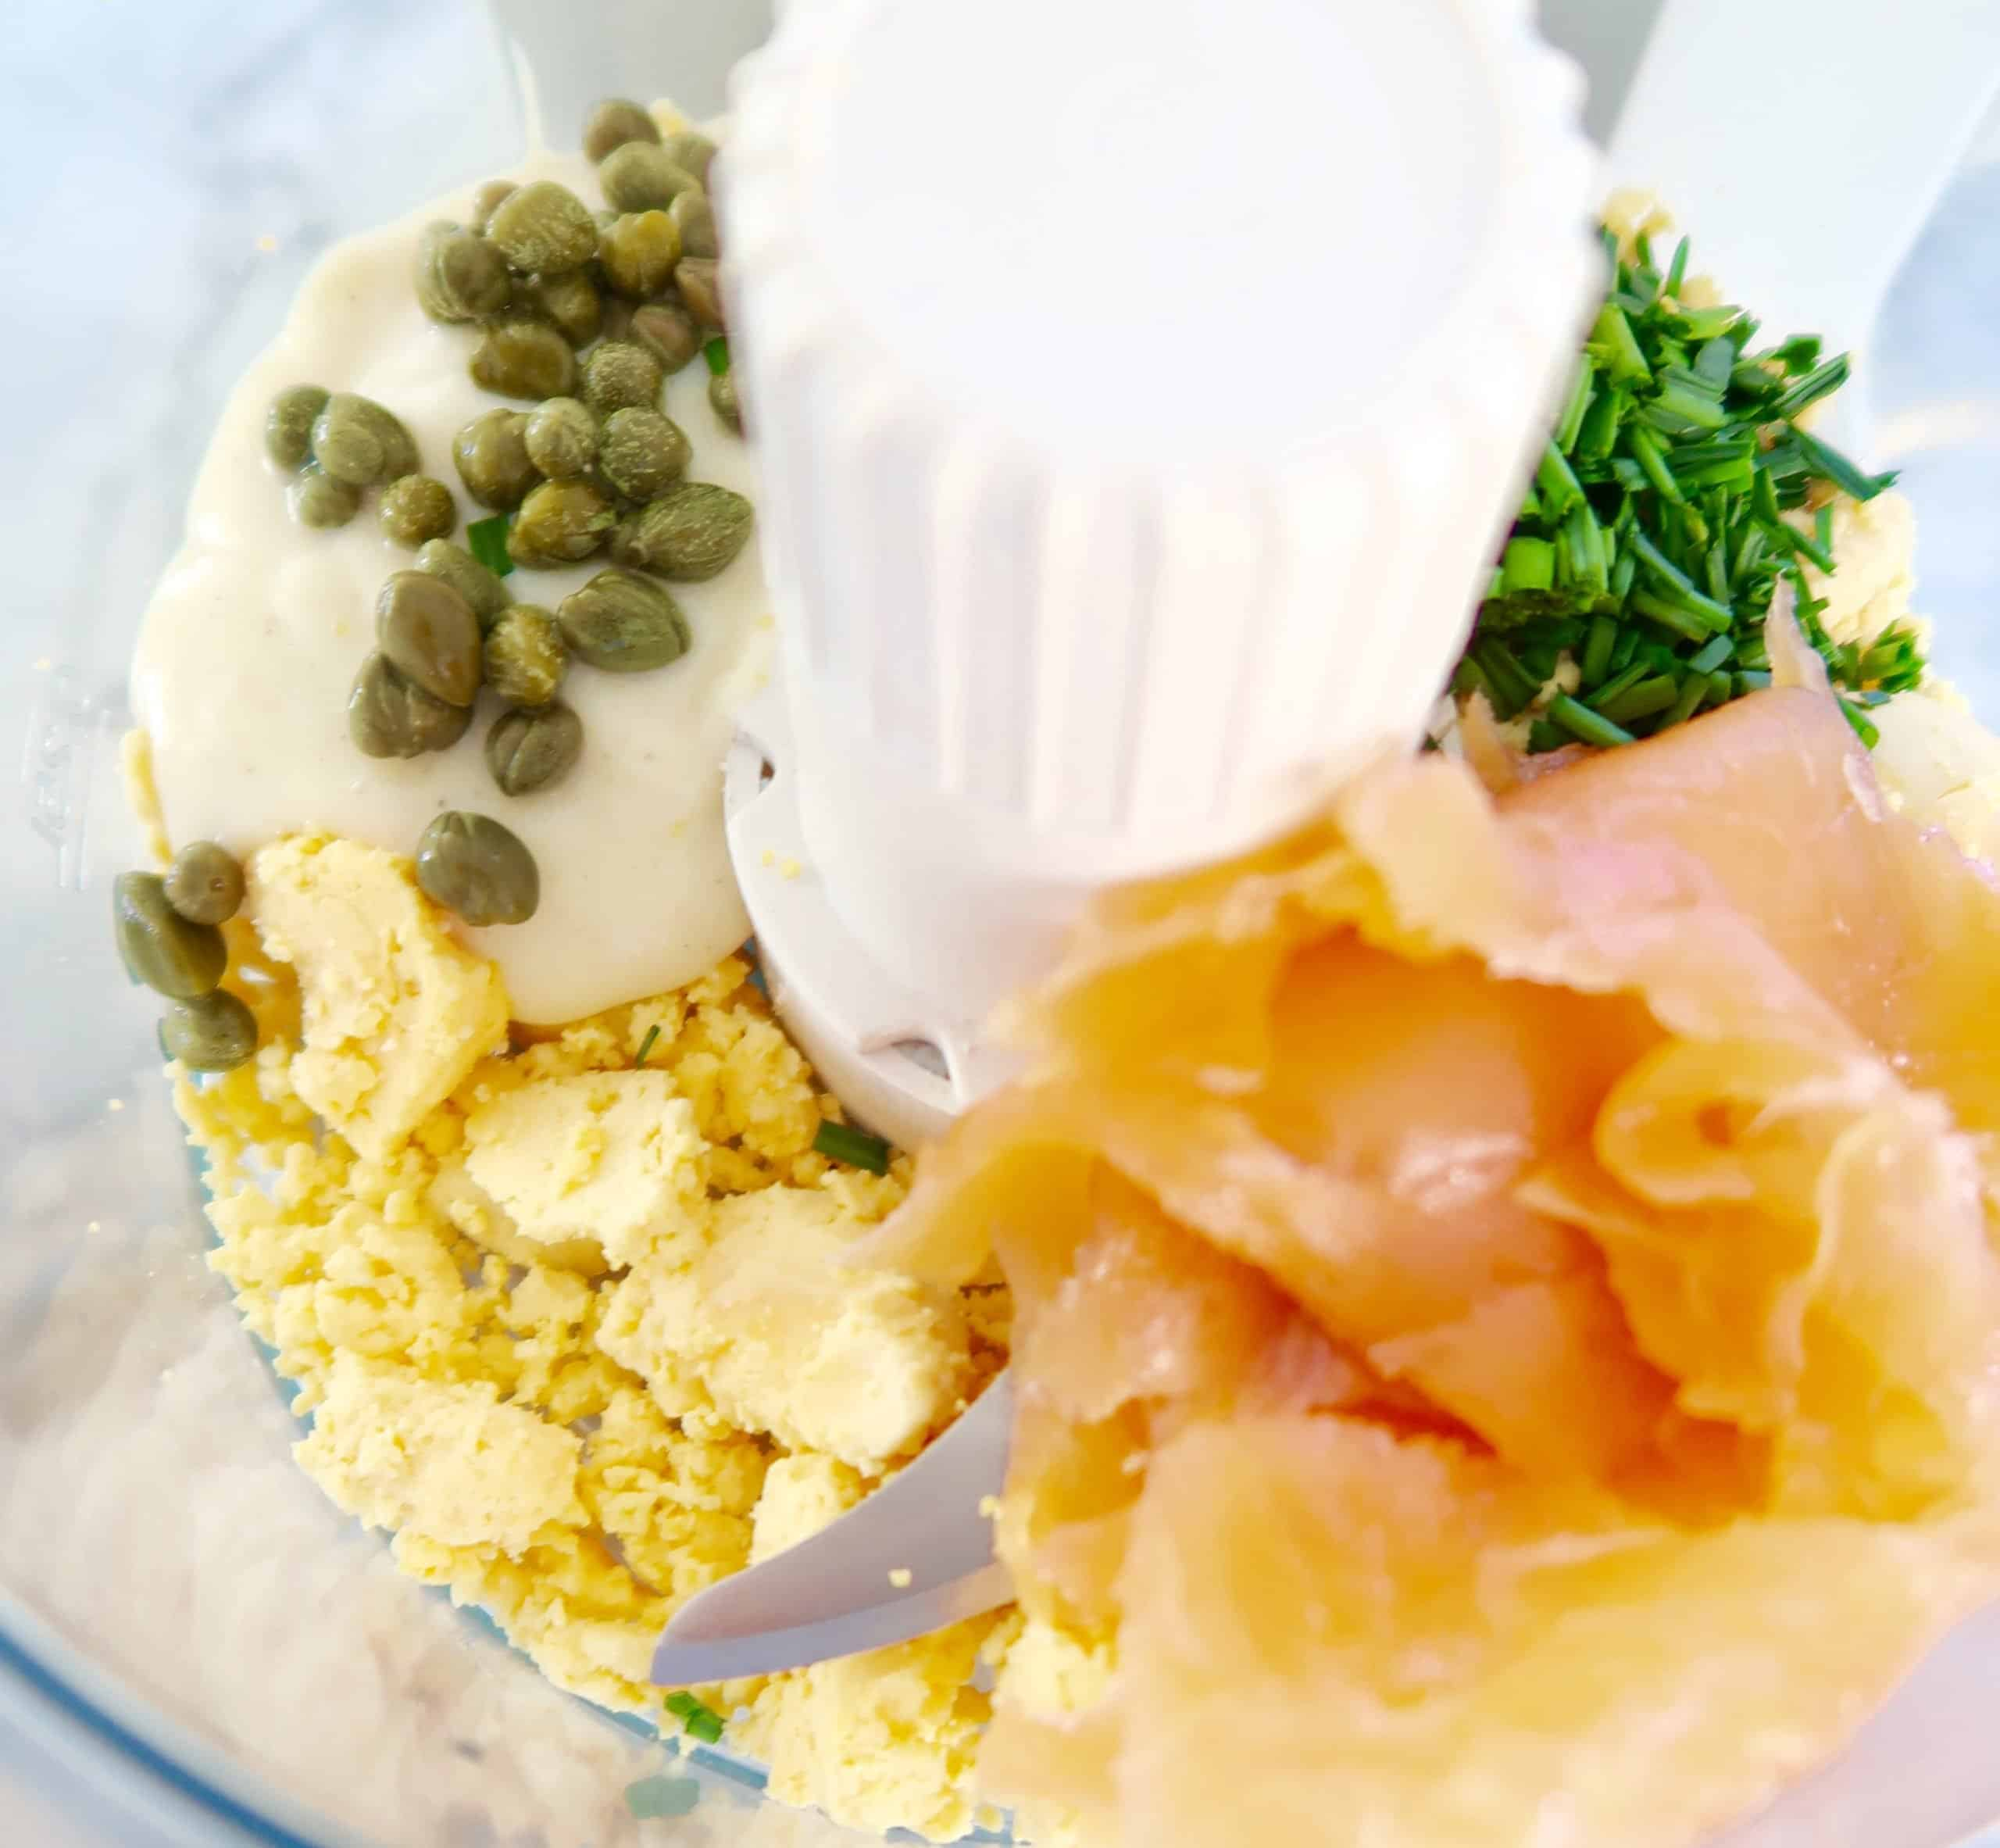 devilled eggs with smoked salmon yolks, smoked salmon, capers, salmon and chives added to food processor